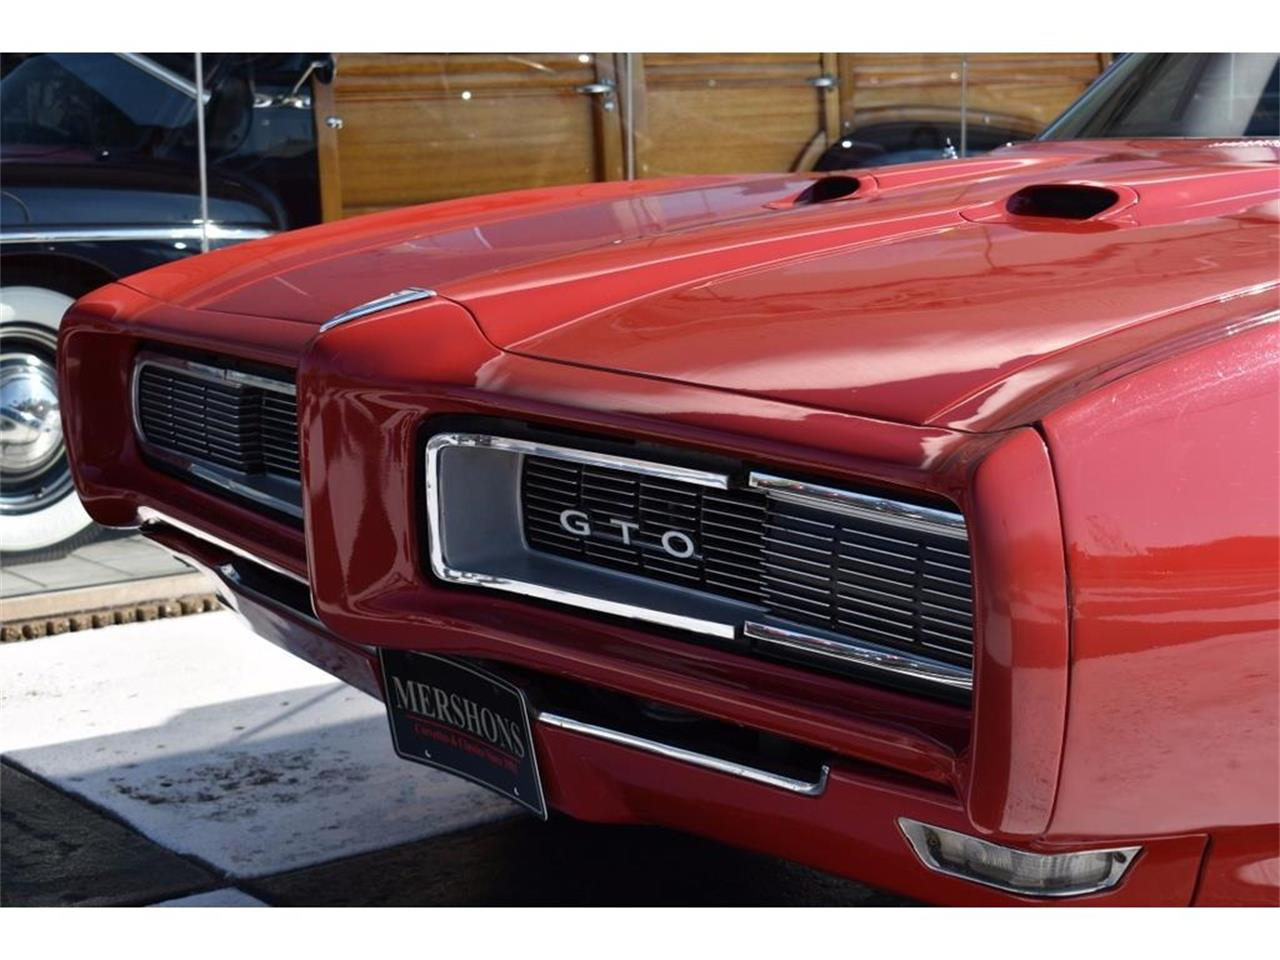 Large Picture of '68 Pontiac GTO located in Springfield Ohio - $34,900.00 - M60Y